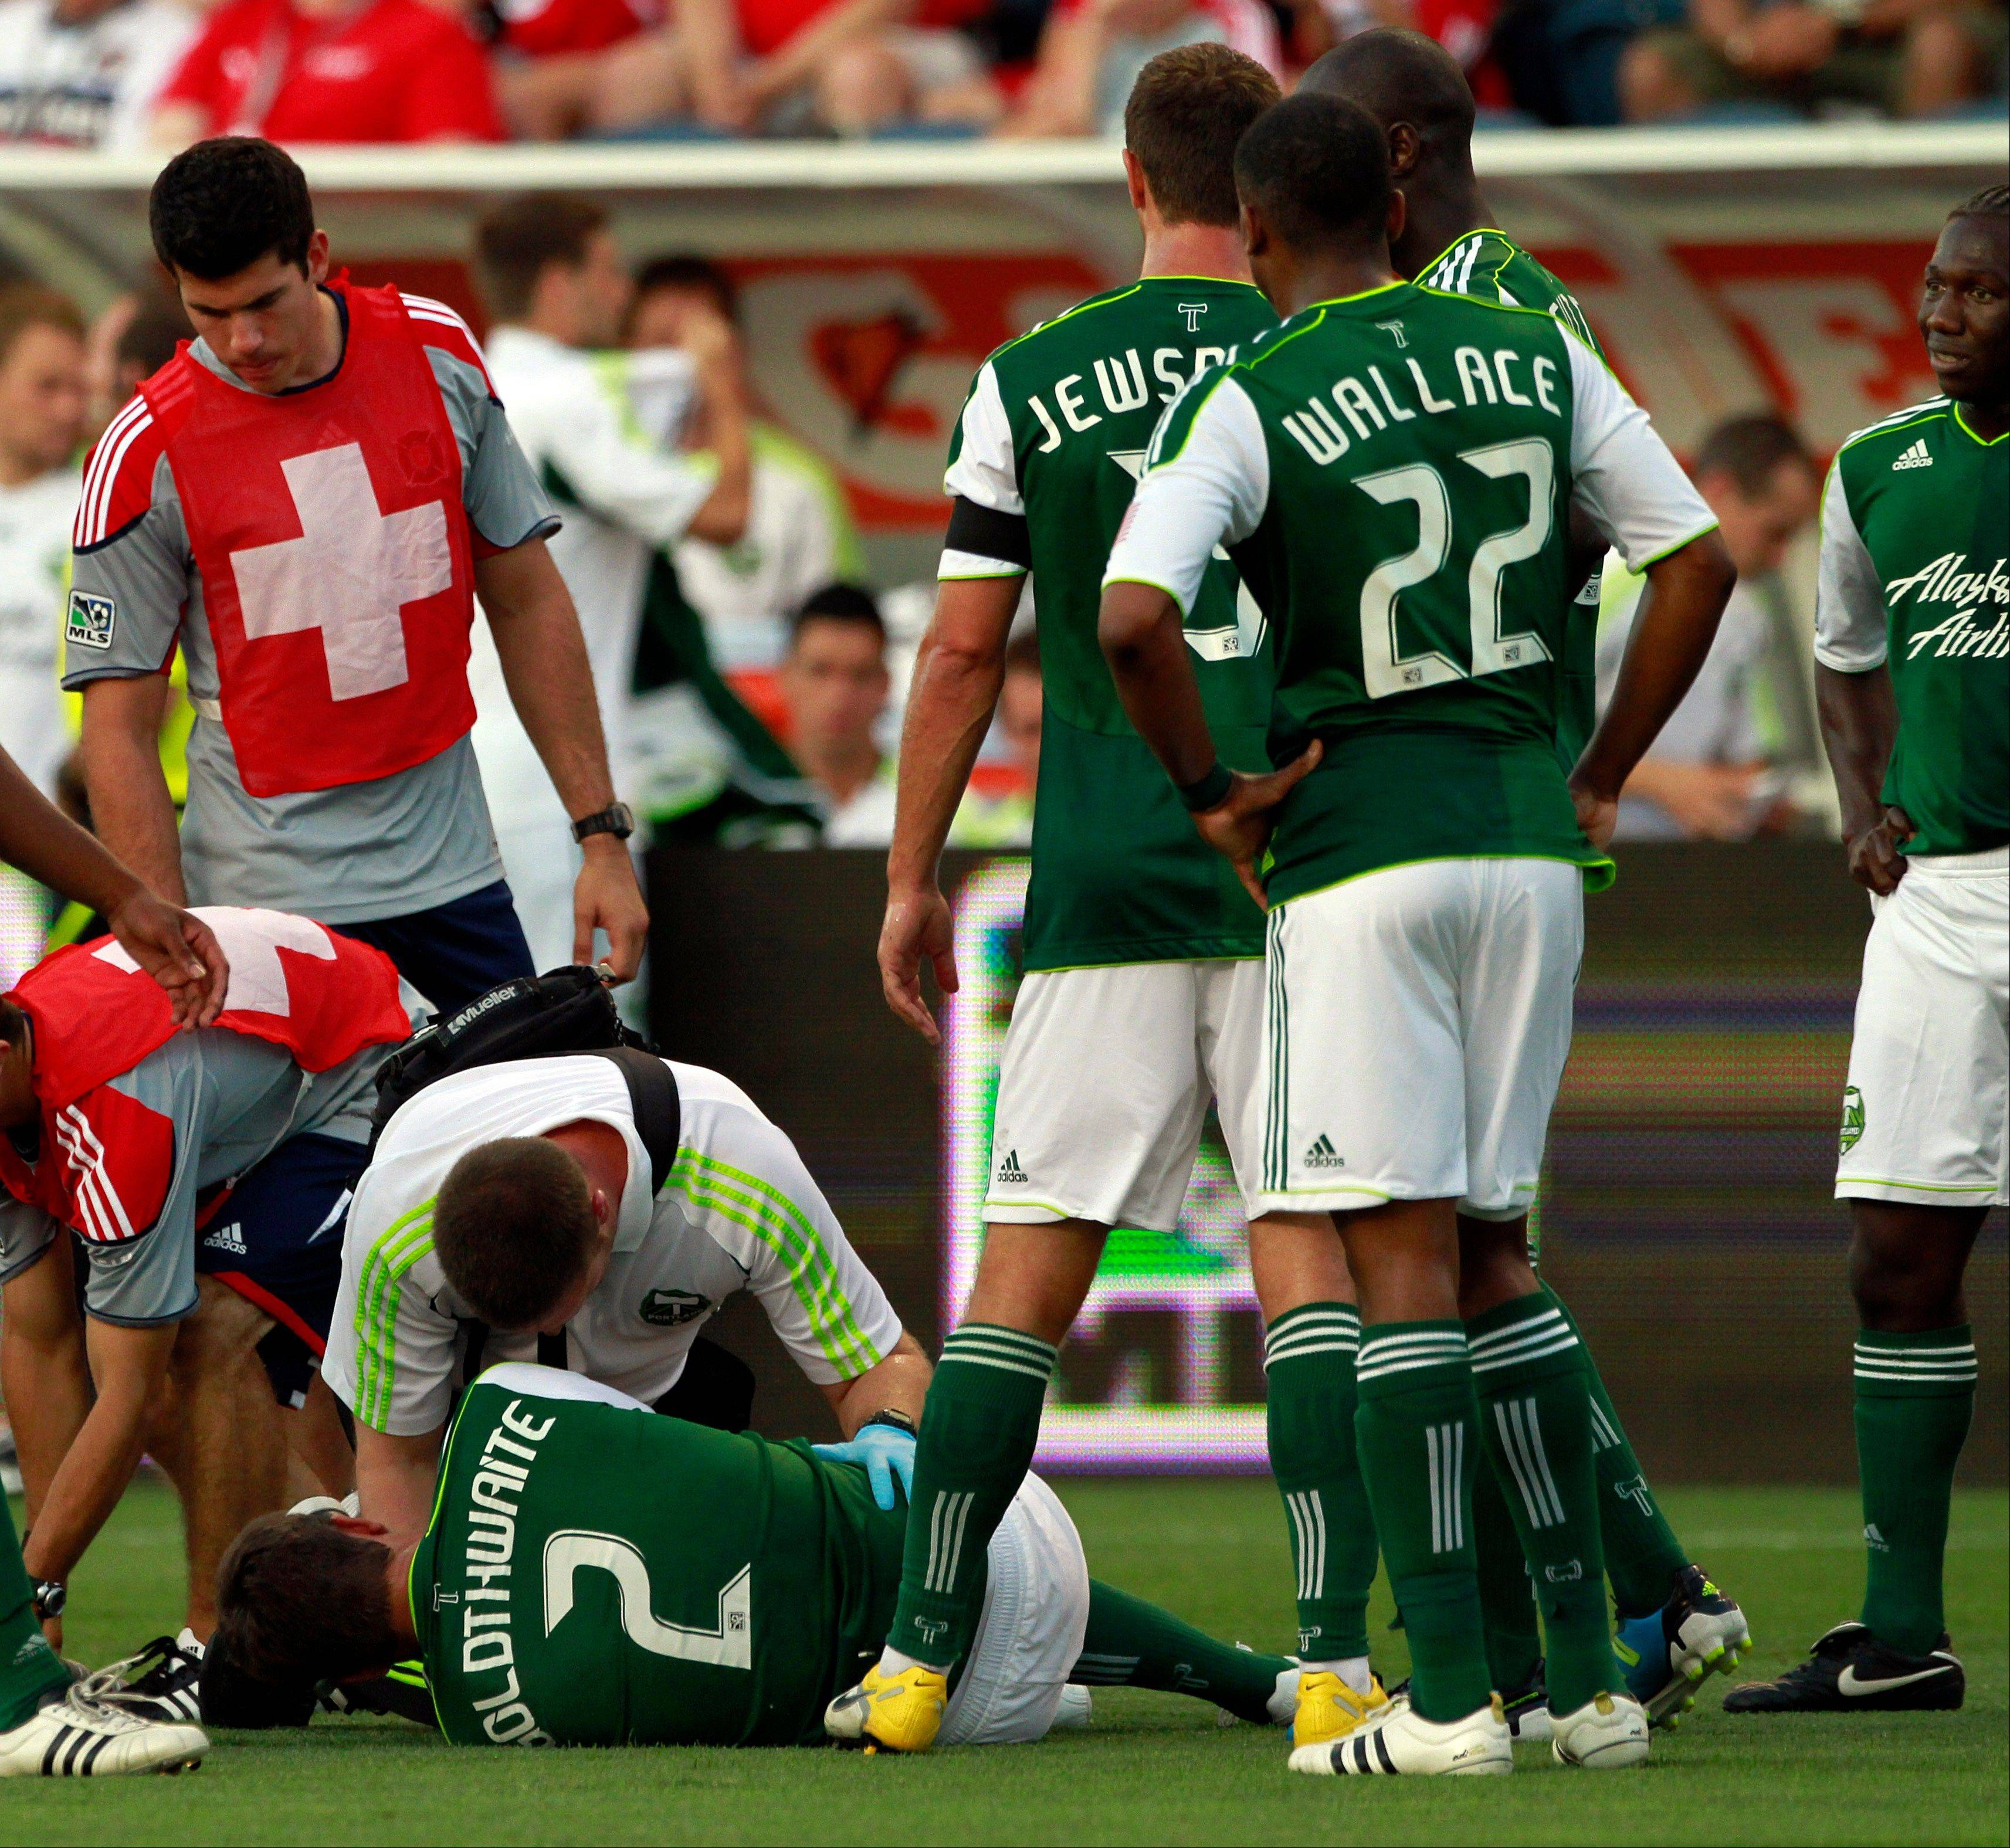 The Portland Timbers' Kevin Goldthwaite is carried off the field after being injured in the first half Saturday at Toyota Park.